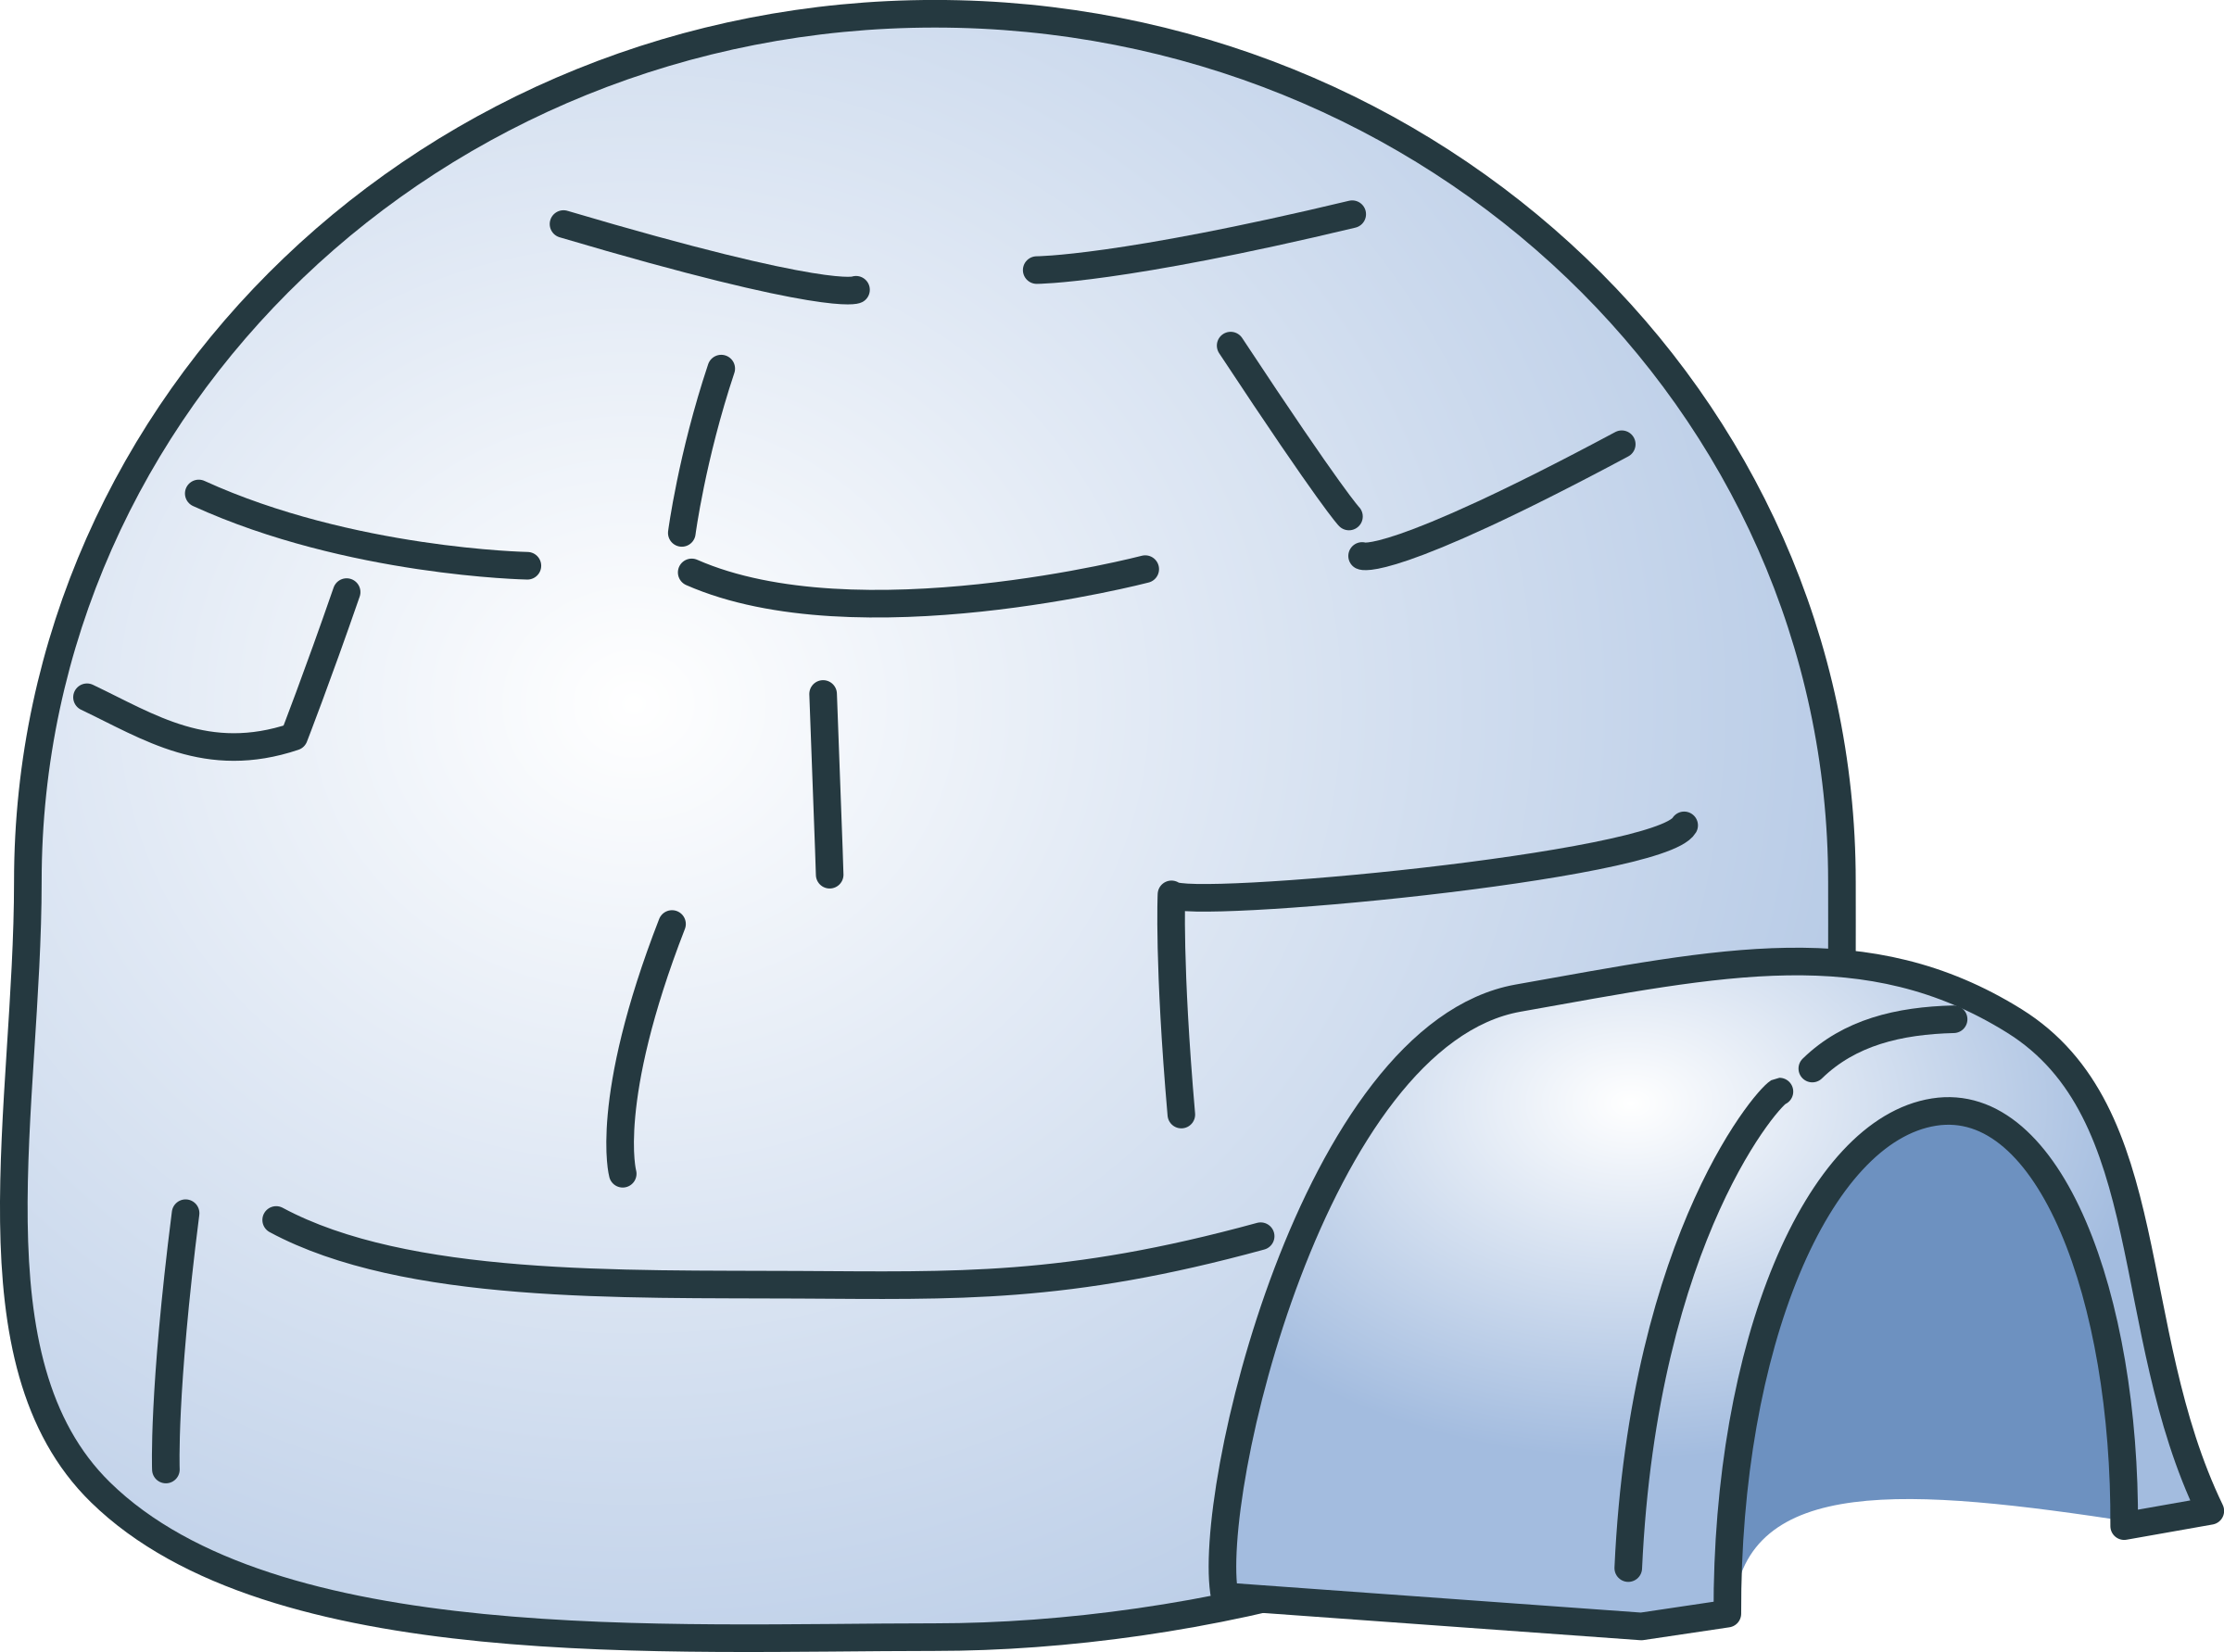 Igloo clipart scenery. Free download clip art